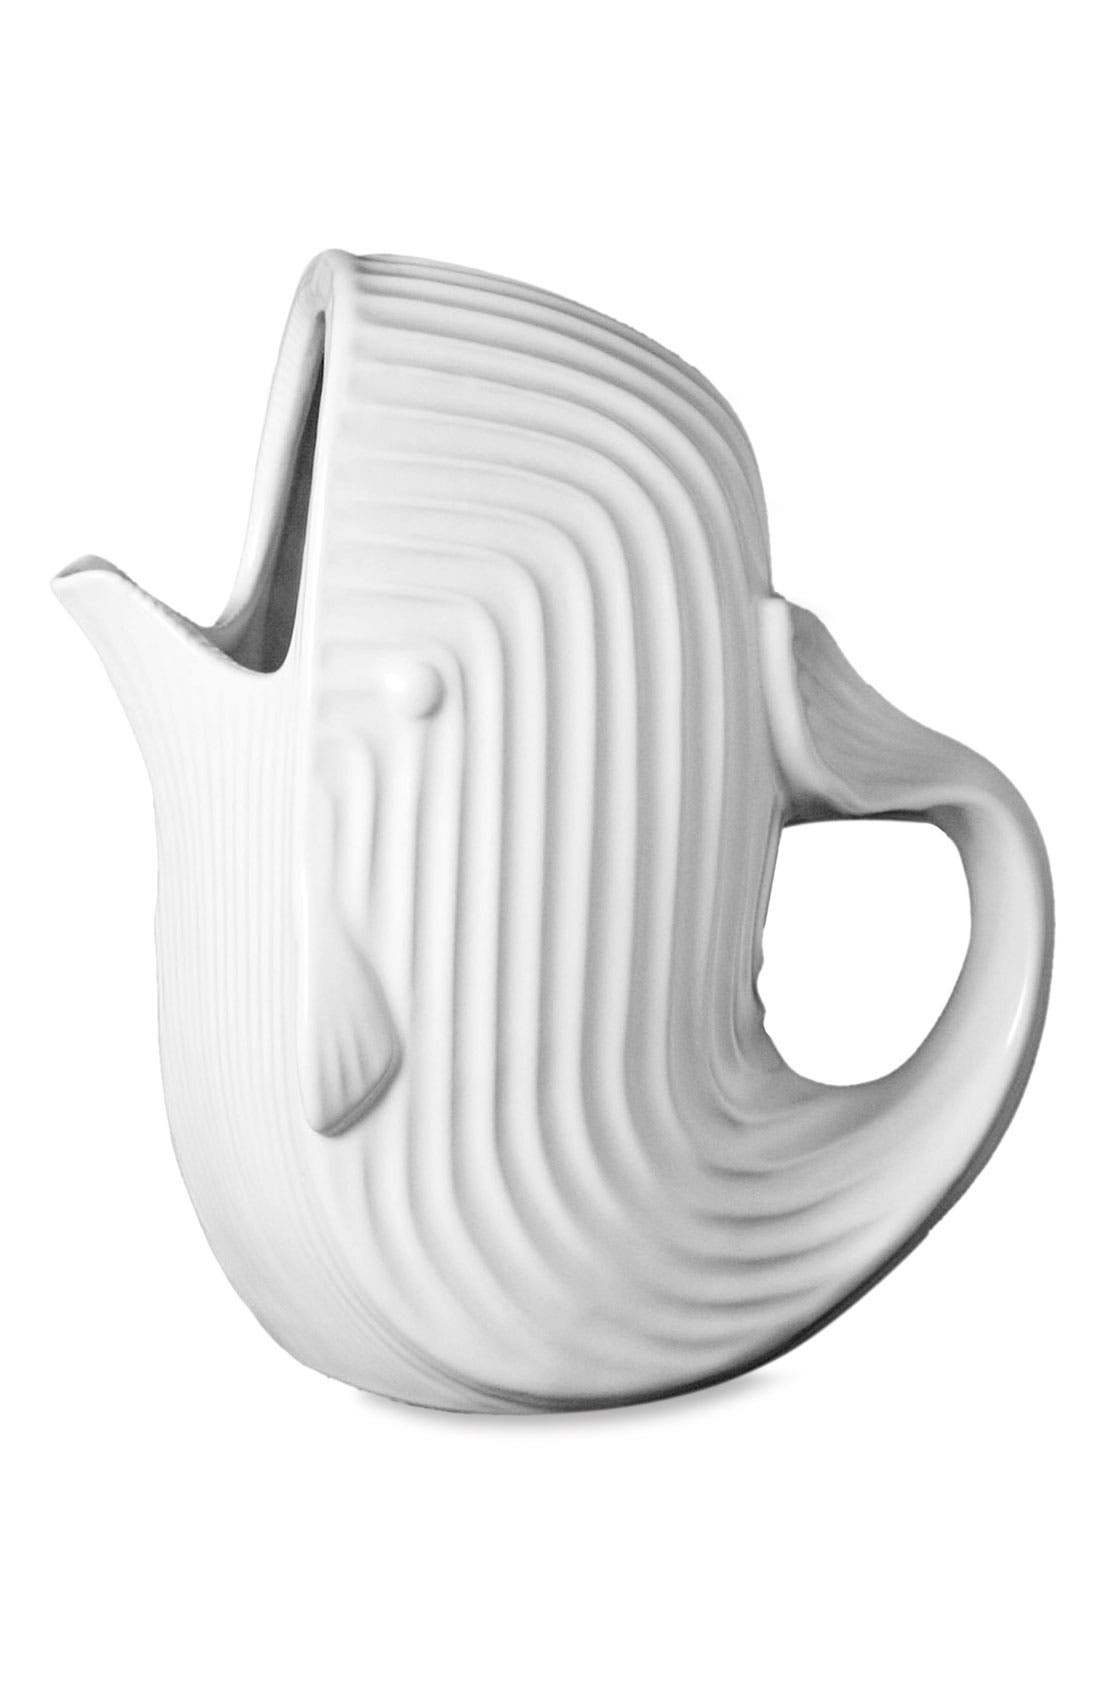 Main Image - Jonathan Adler Whale Pitcher